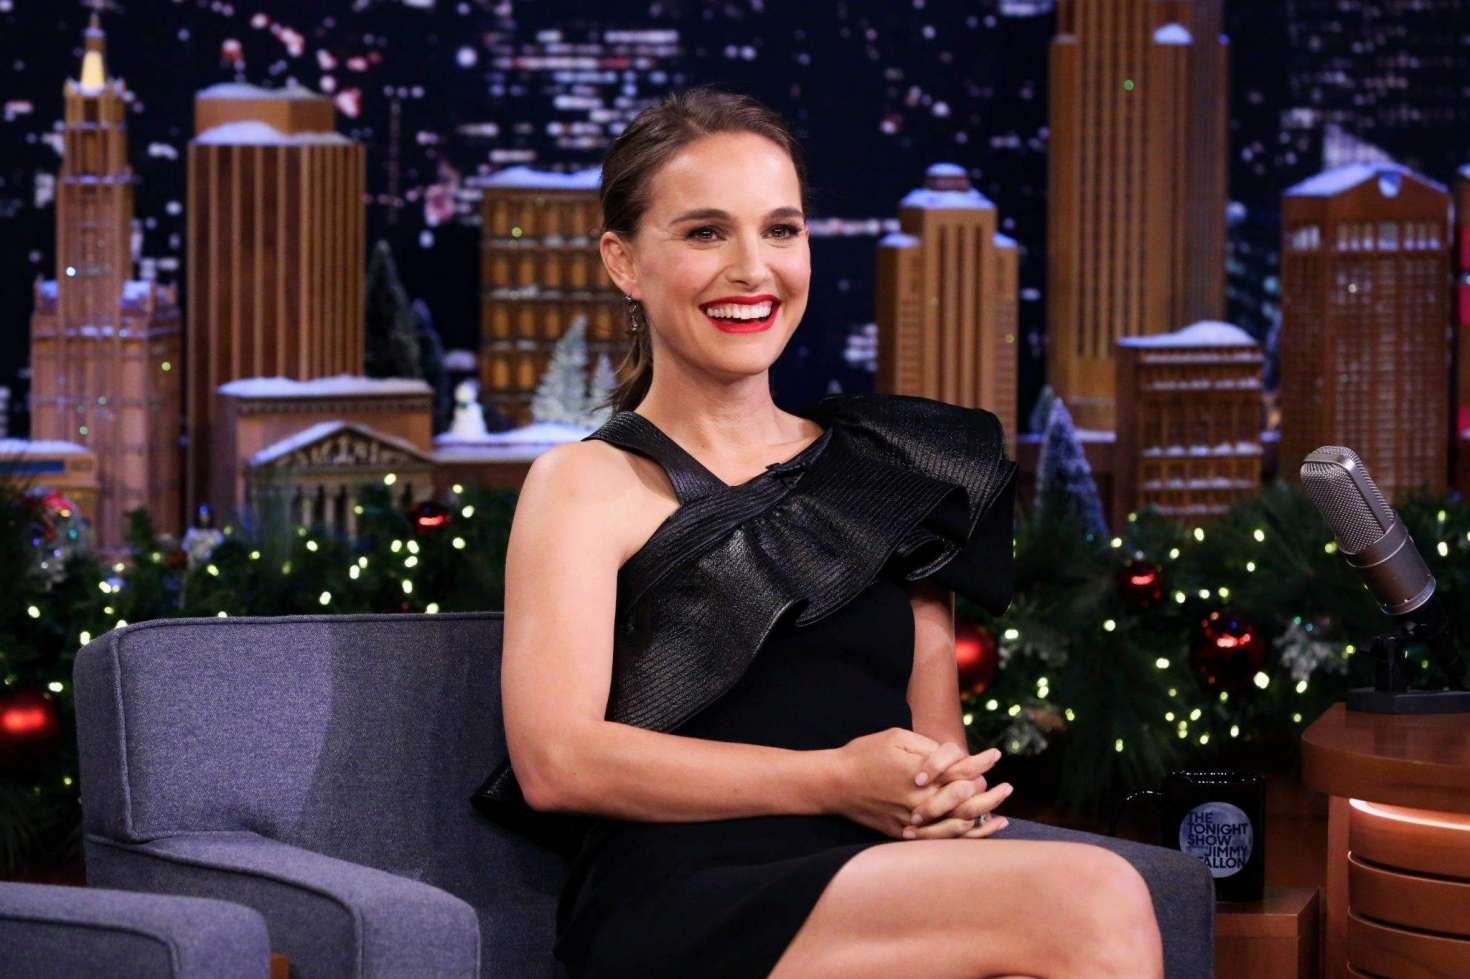 Natalie Portman 2018 : Natalie Portman: The Tonight Show Starring Jimmy Fallon -05